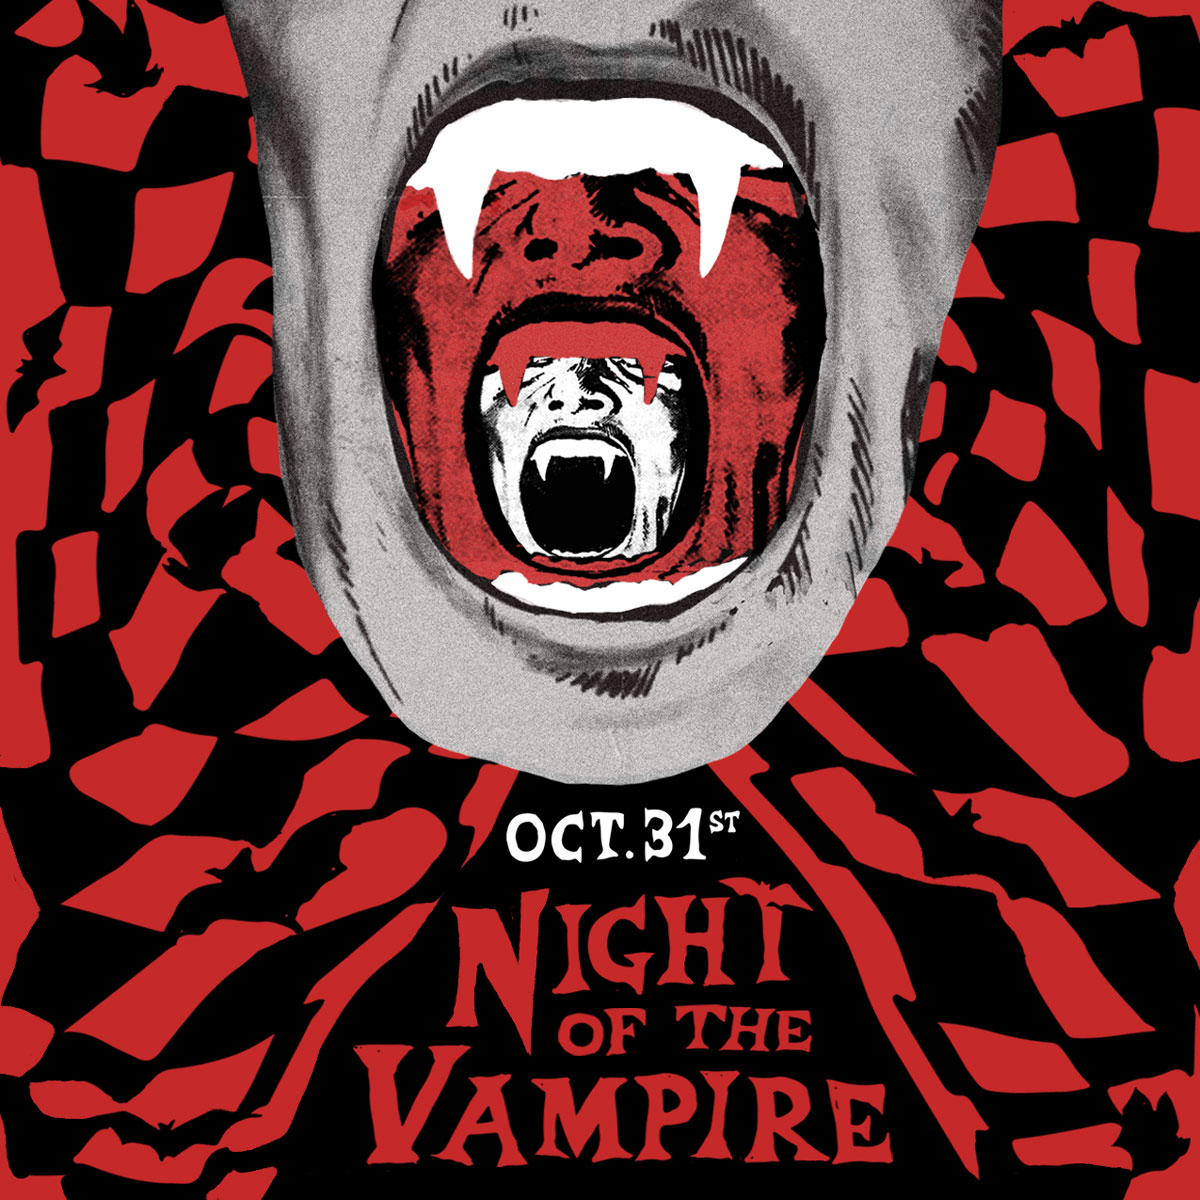 Click to read the full Night of the Vampire post